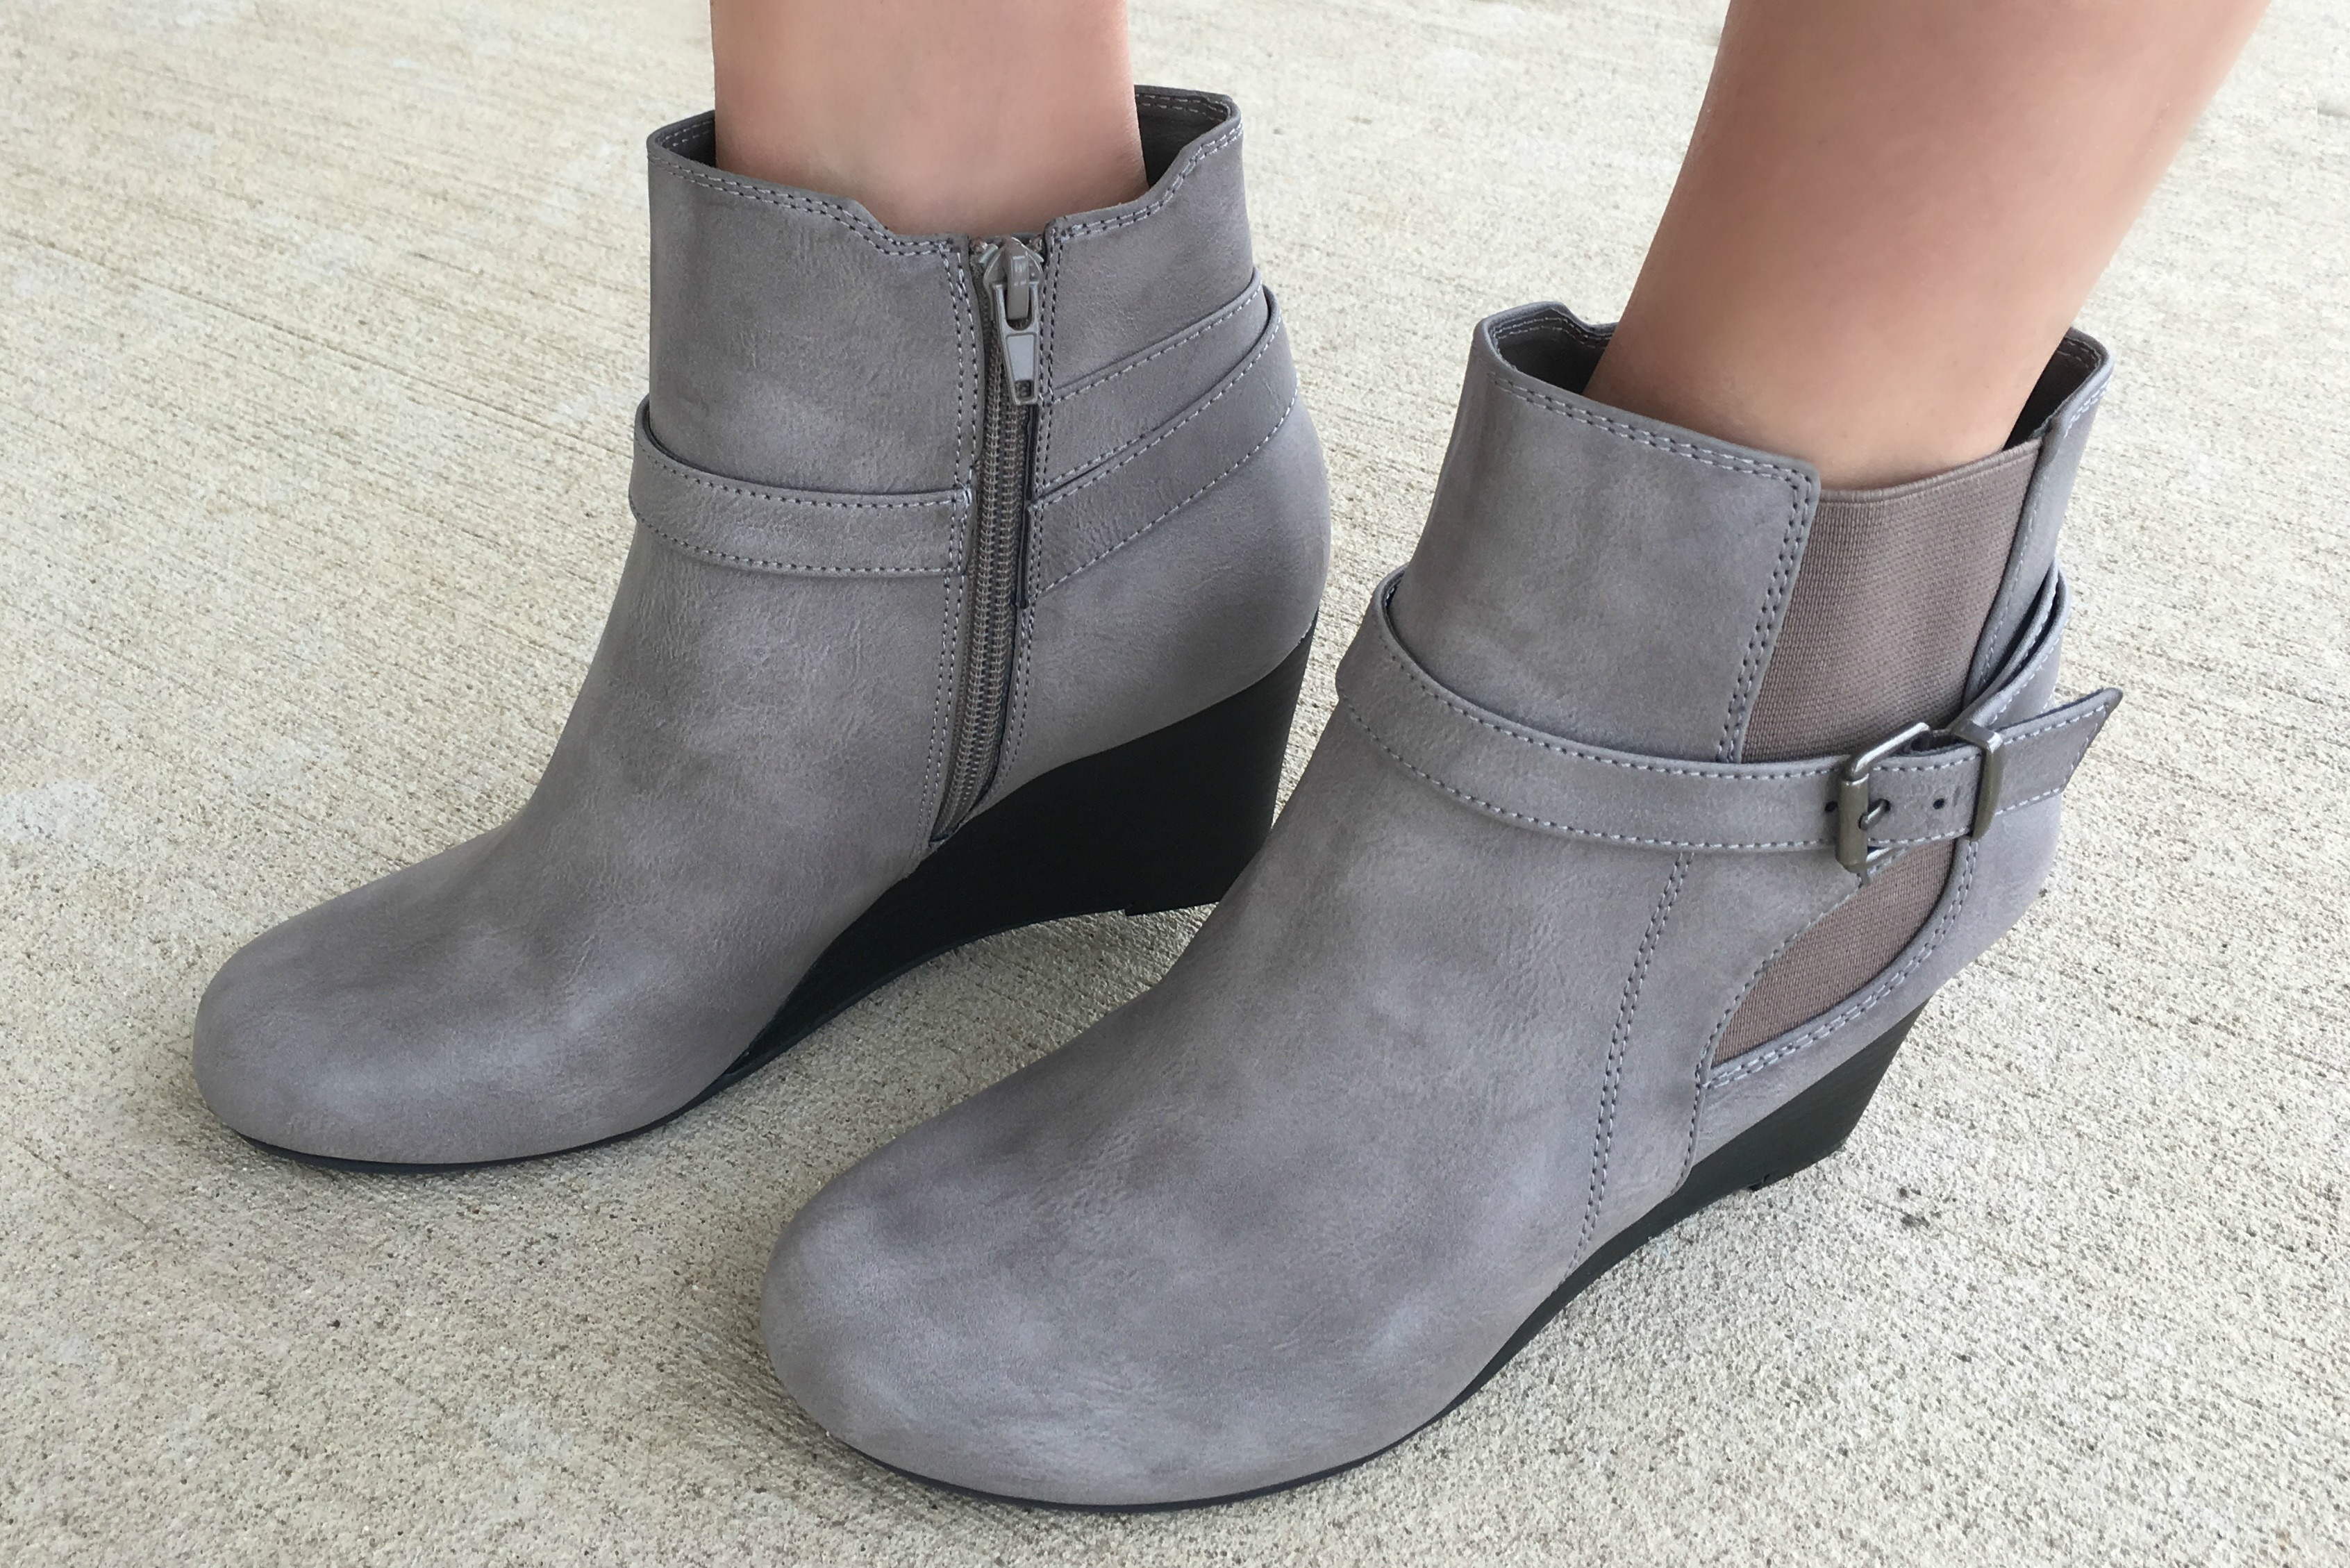 grey-wedges-up-close